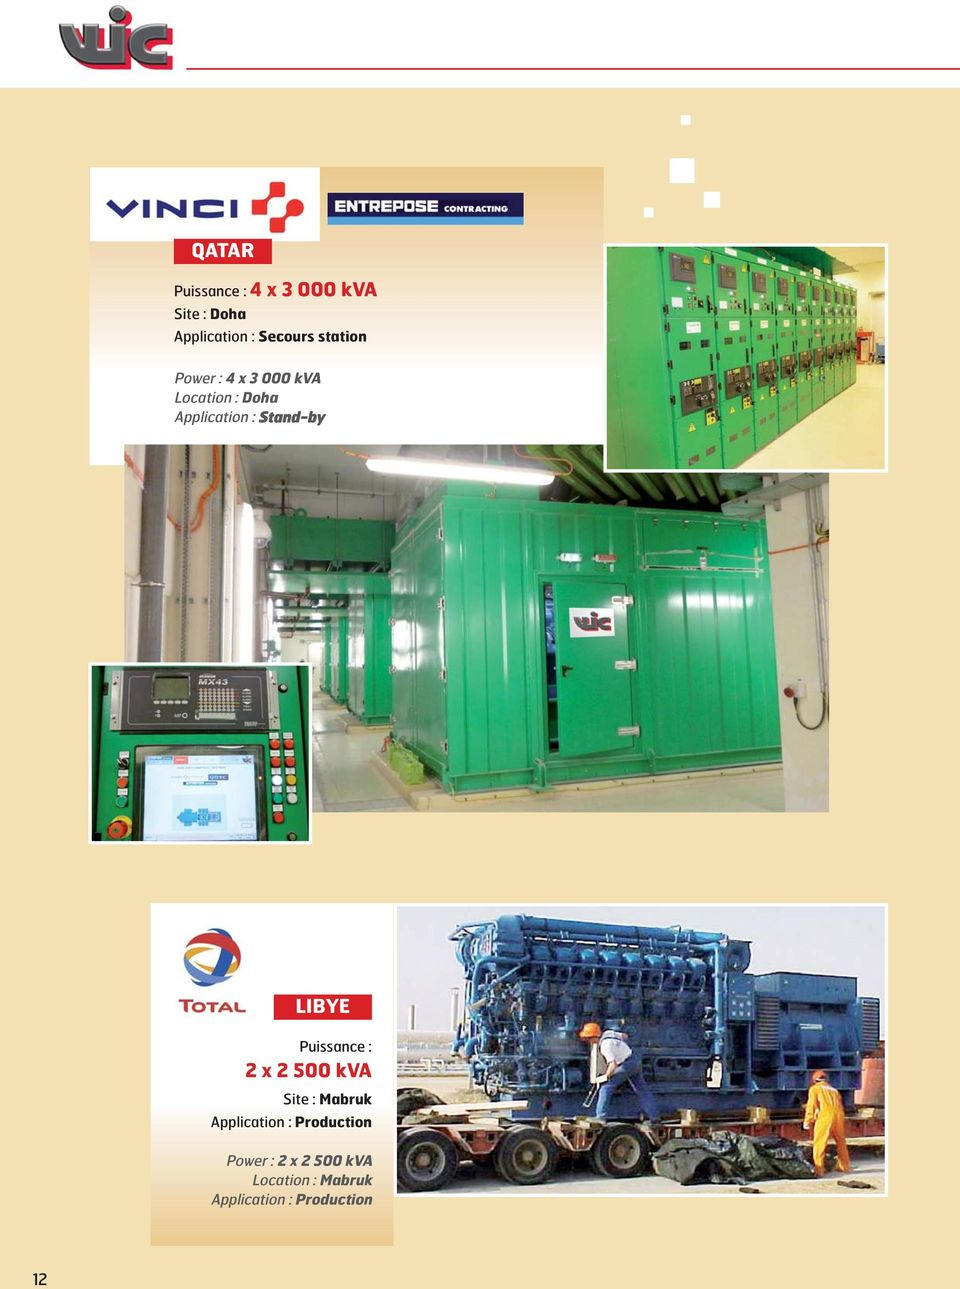 Site : Mabruk Application : Production Power : 2 x